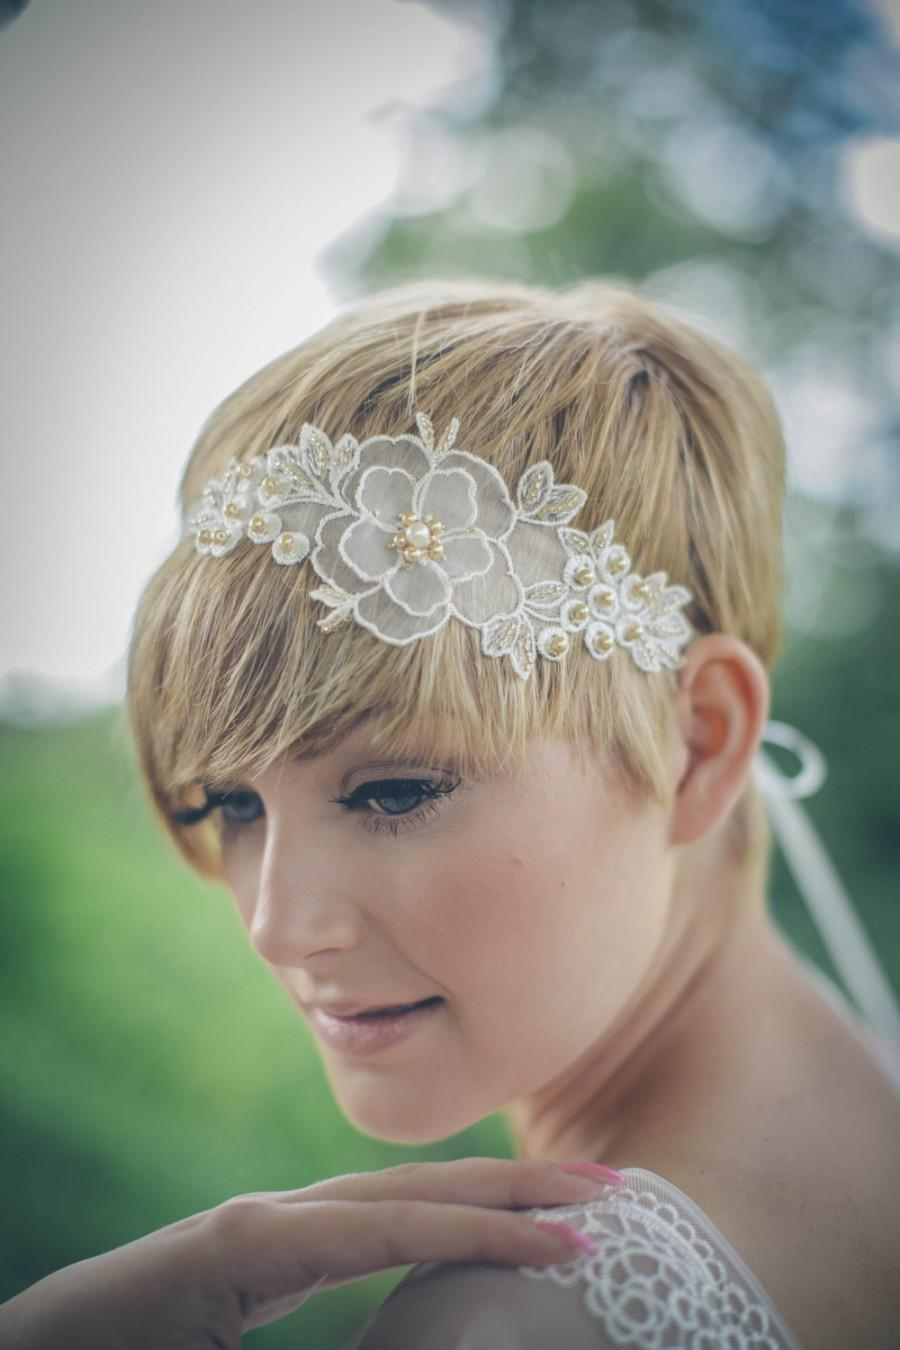 Hochzeit - Wedding headband - 'Primrose' pearl floral ivory bridal ribbon headband or forehead band